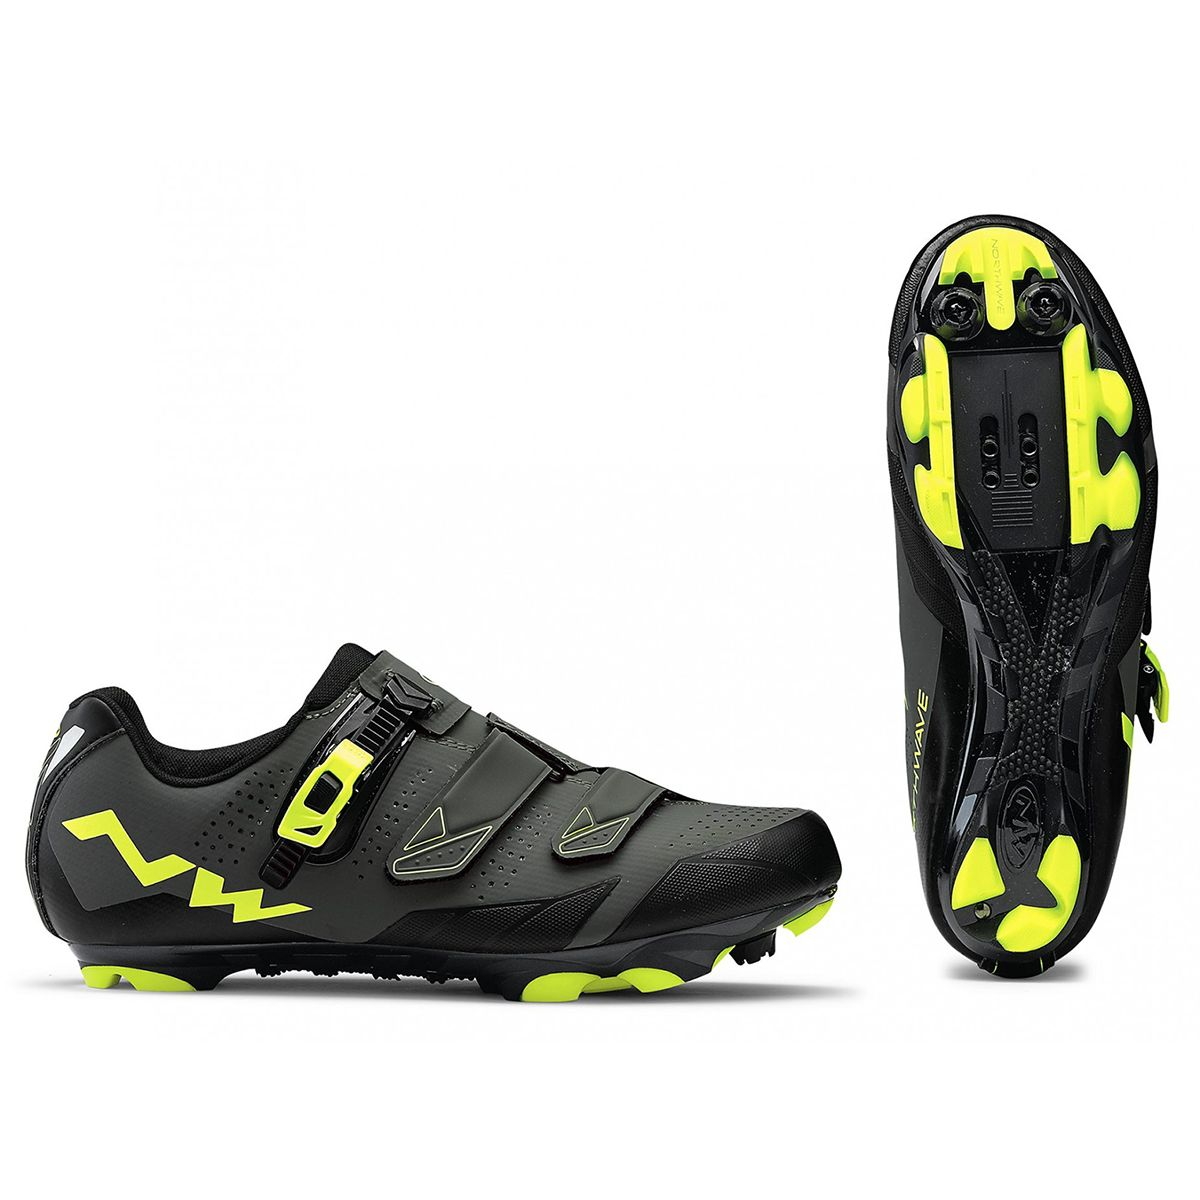 SCREAM 2 SRS MTB Schuhe